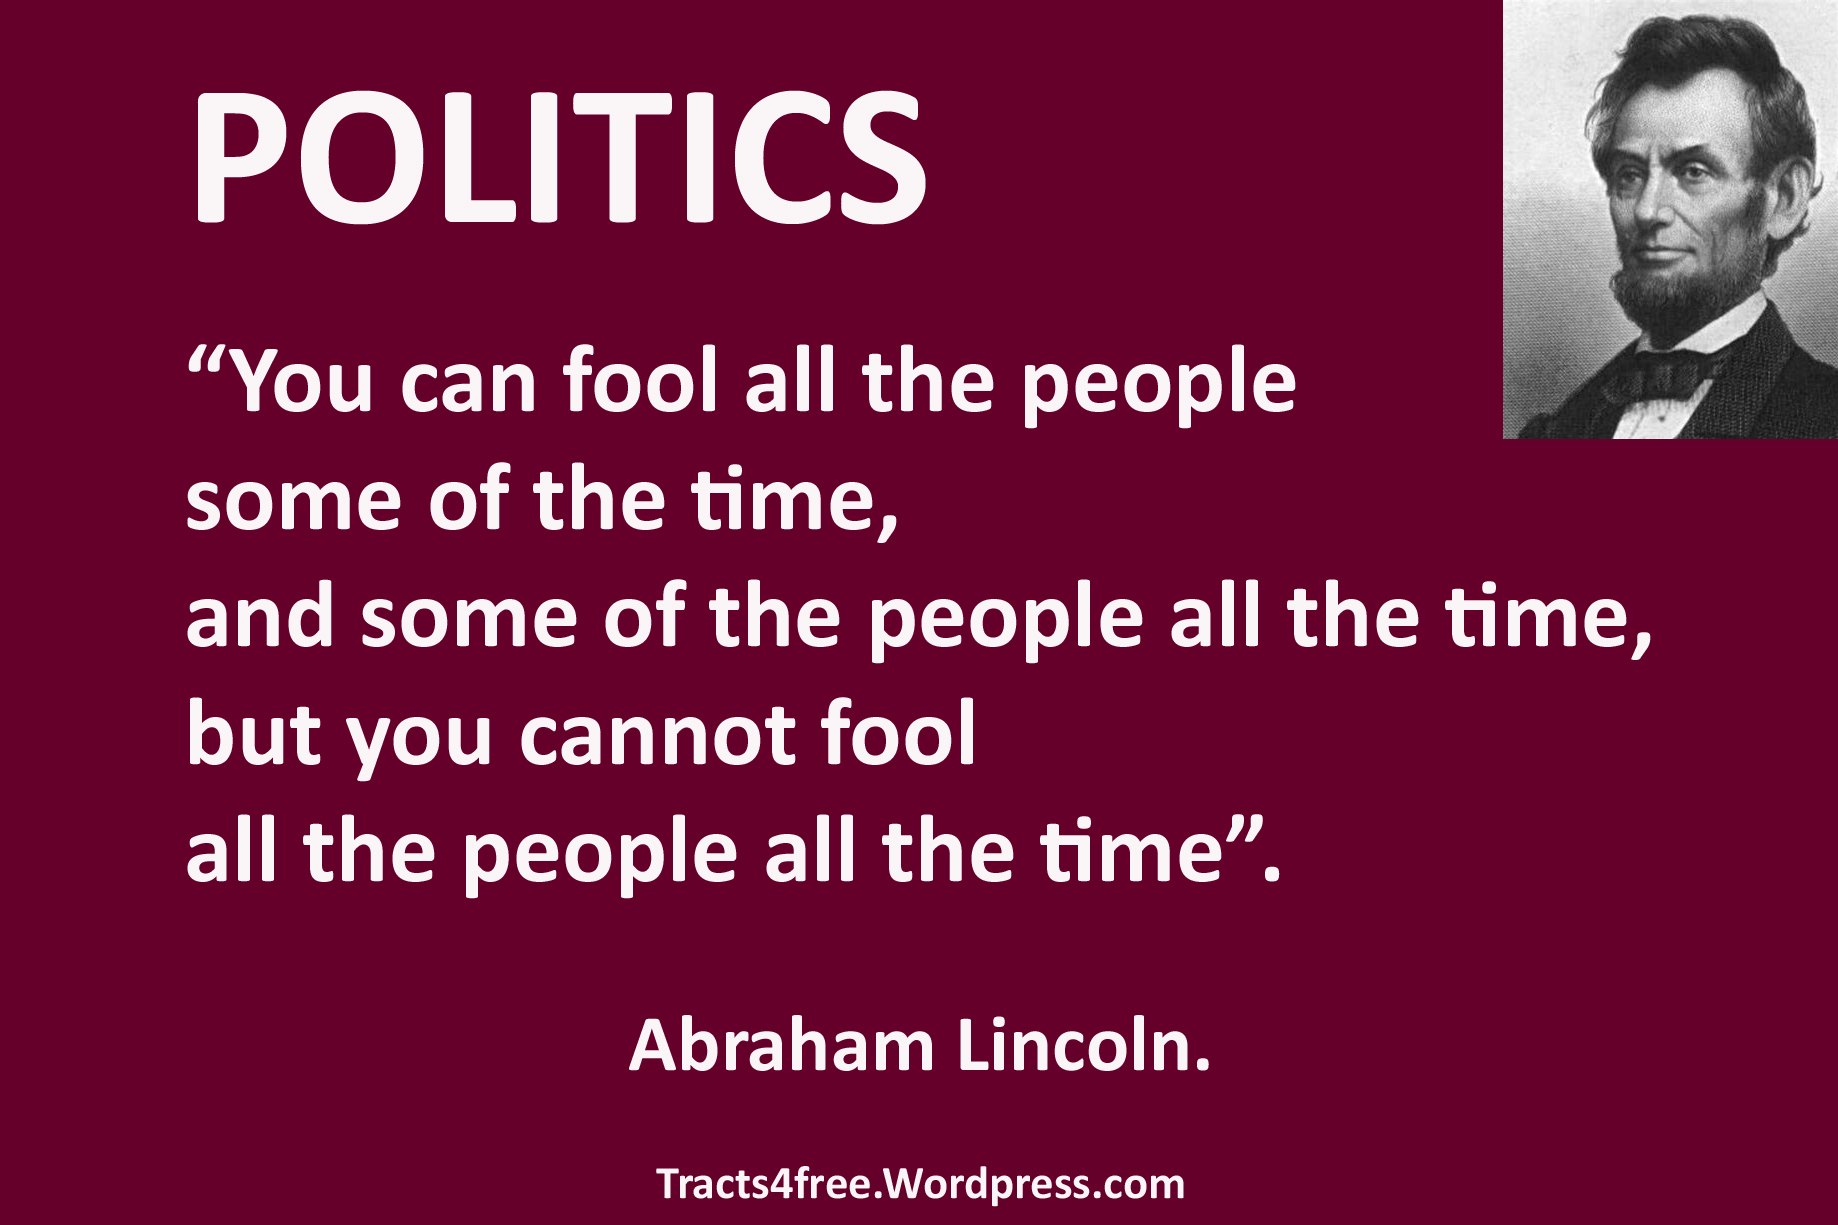 LincolnFoolThePeople